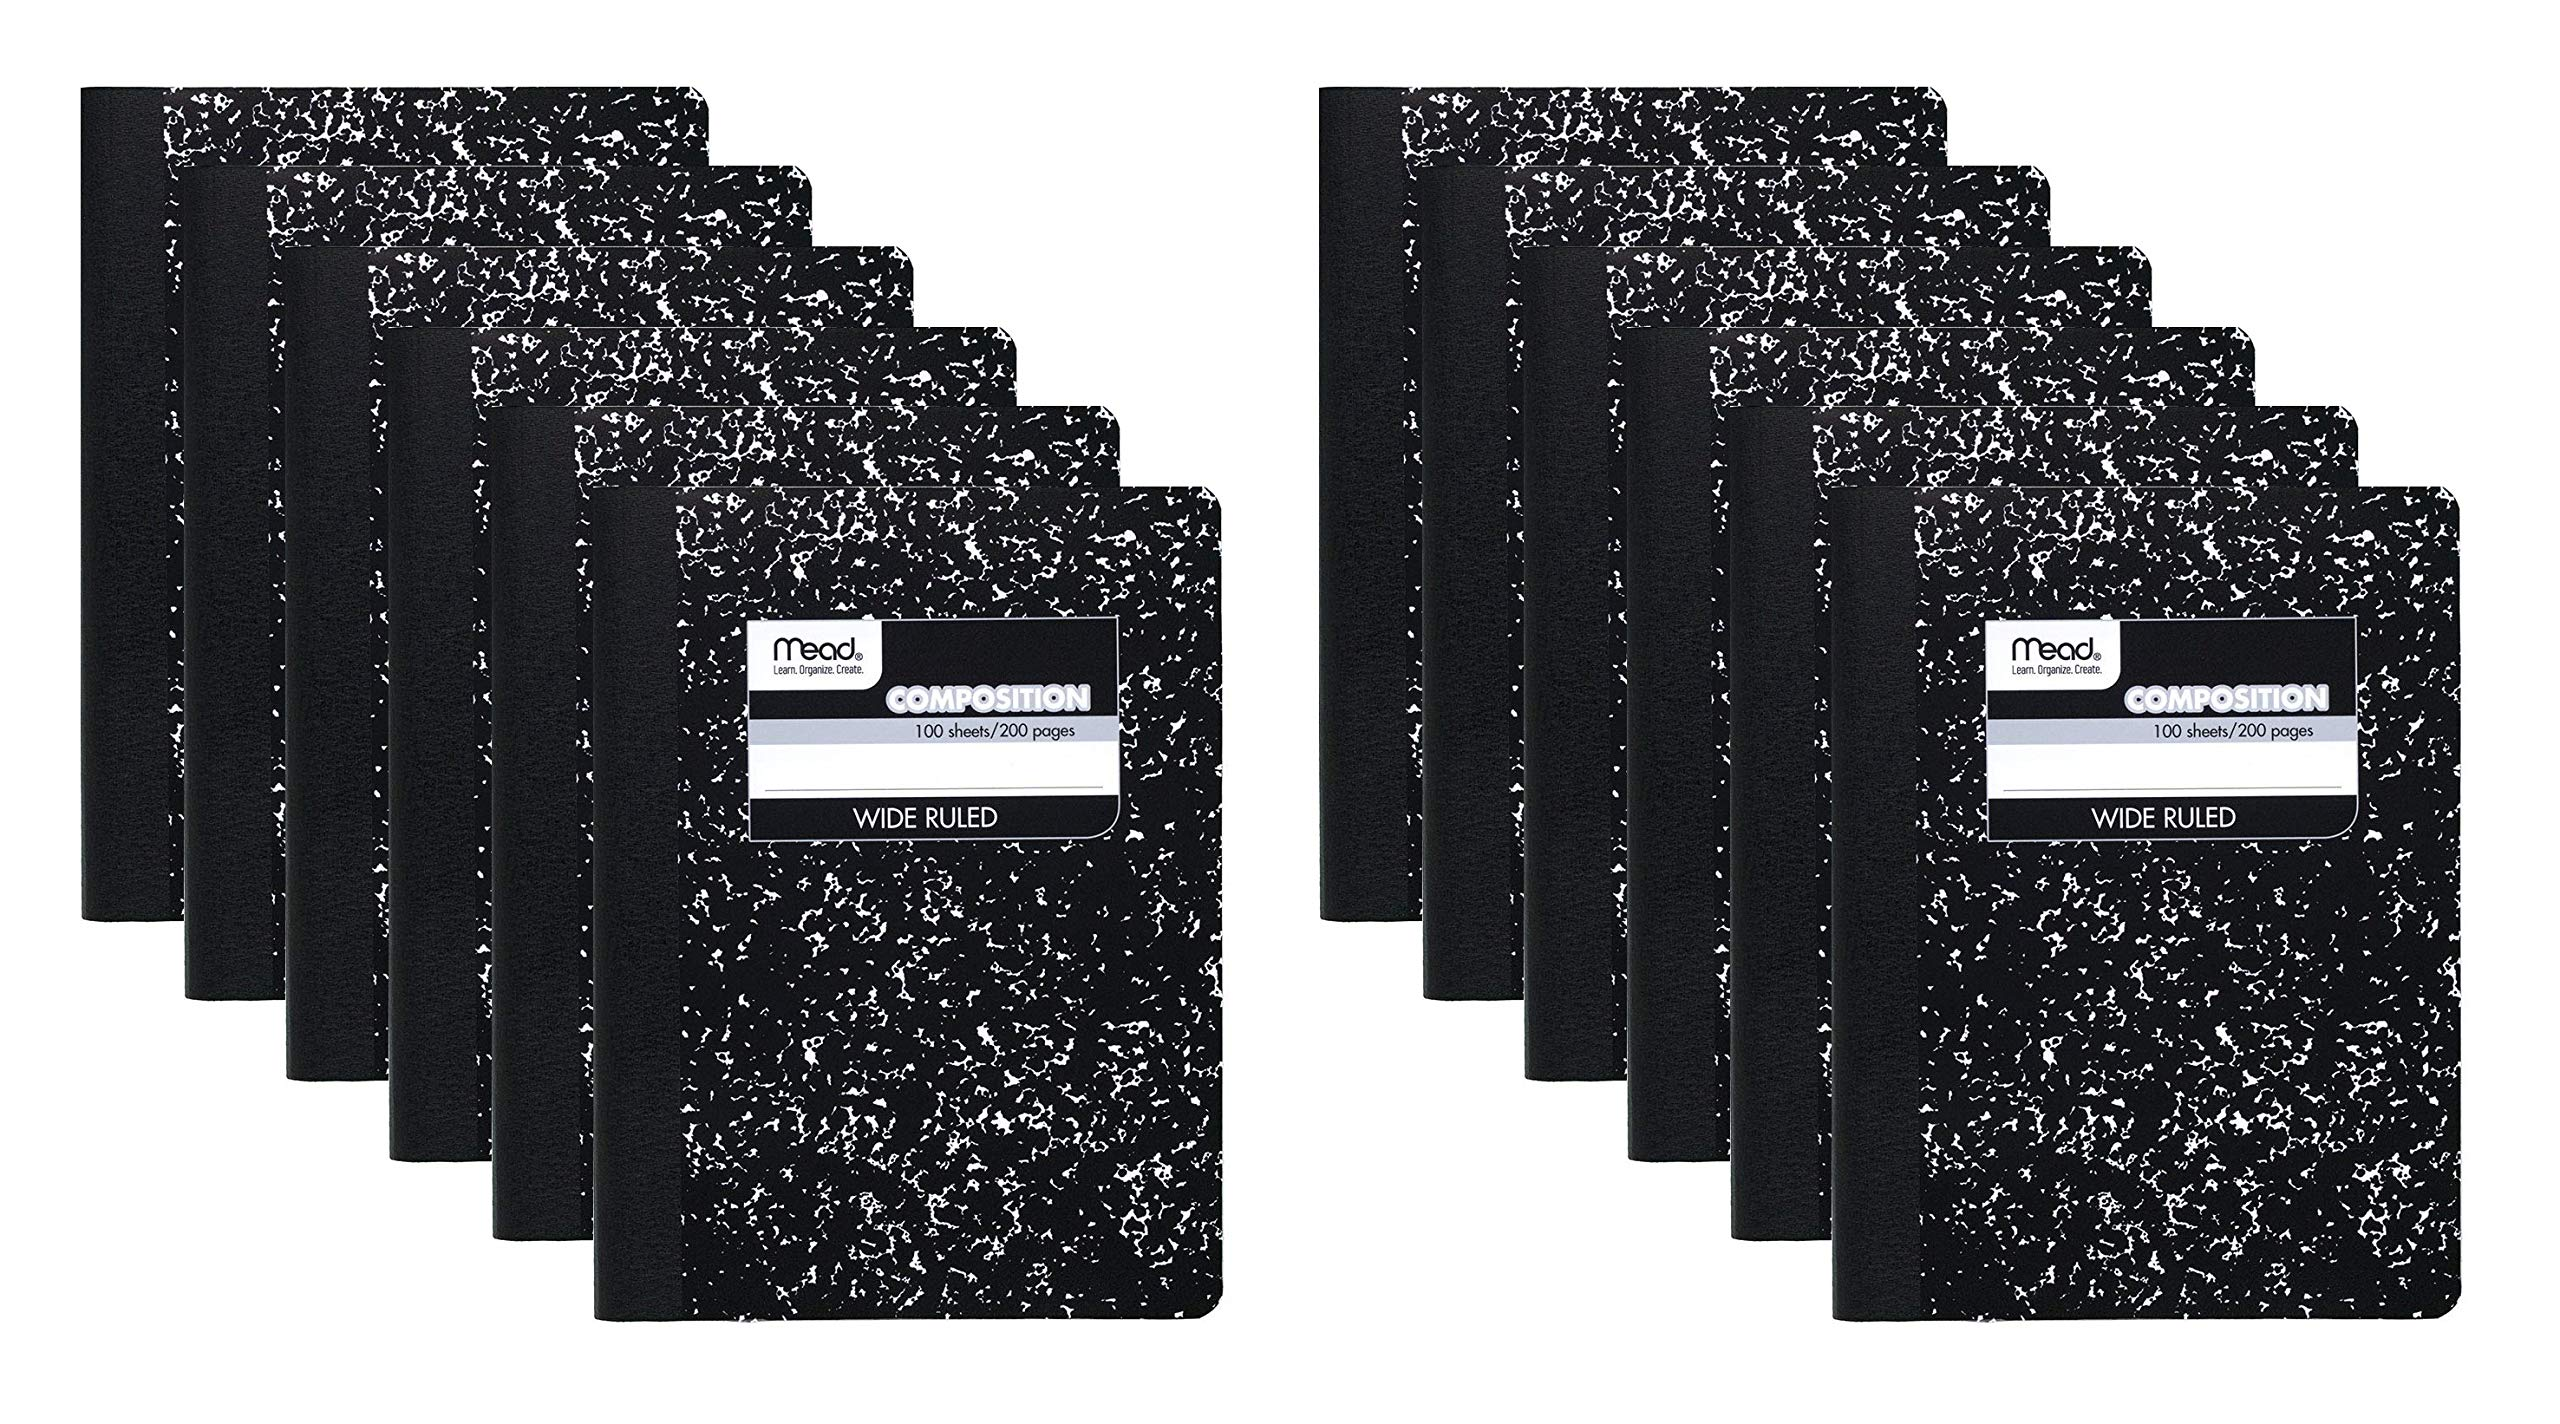 Mead Composition Book/Notebook, Wide Ruled Paper, 100 Sheets, 12 Count